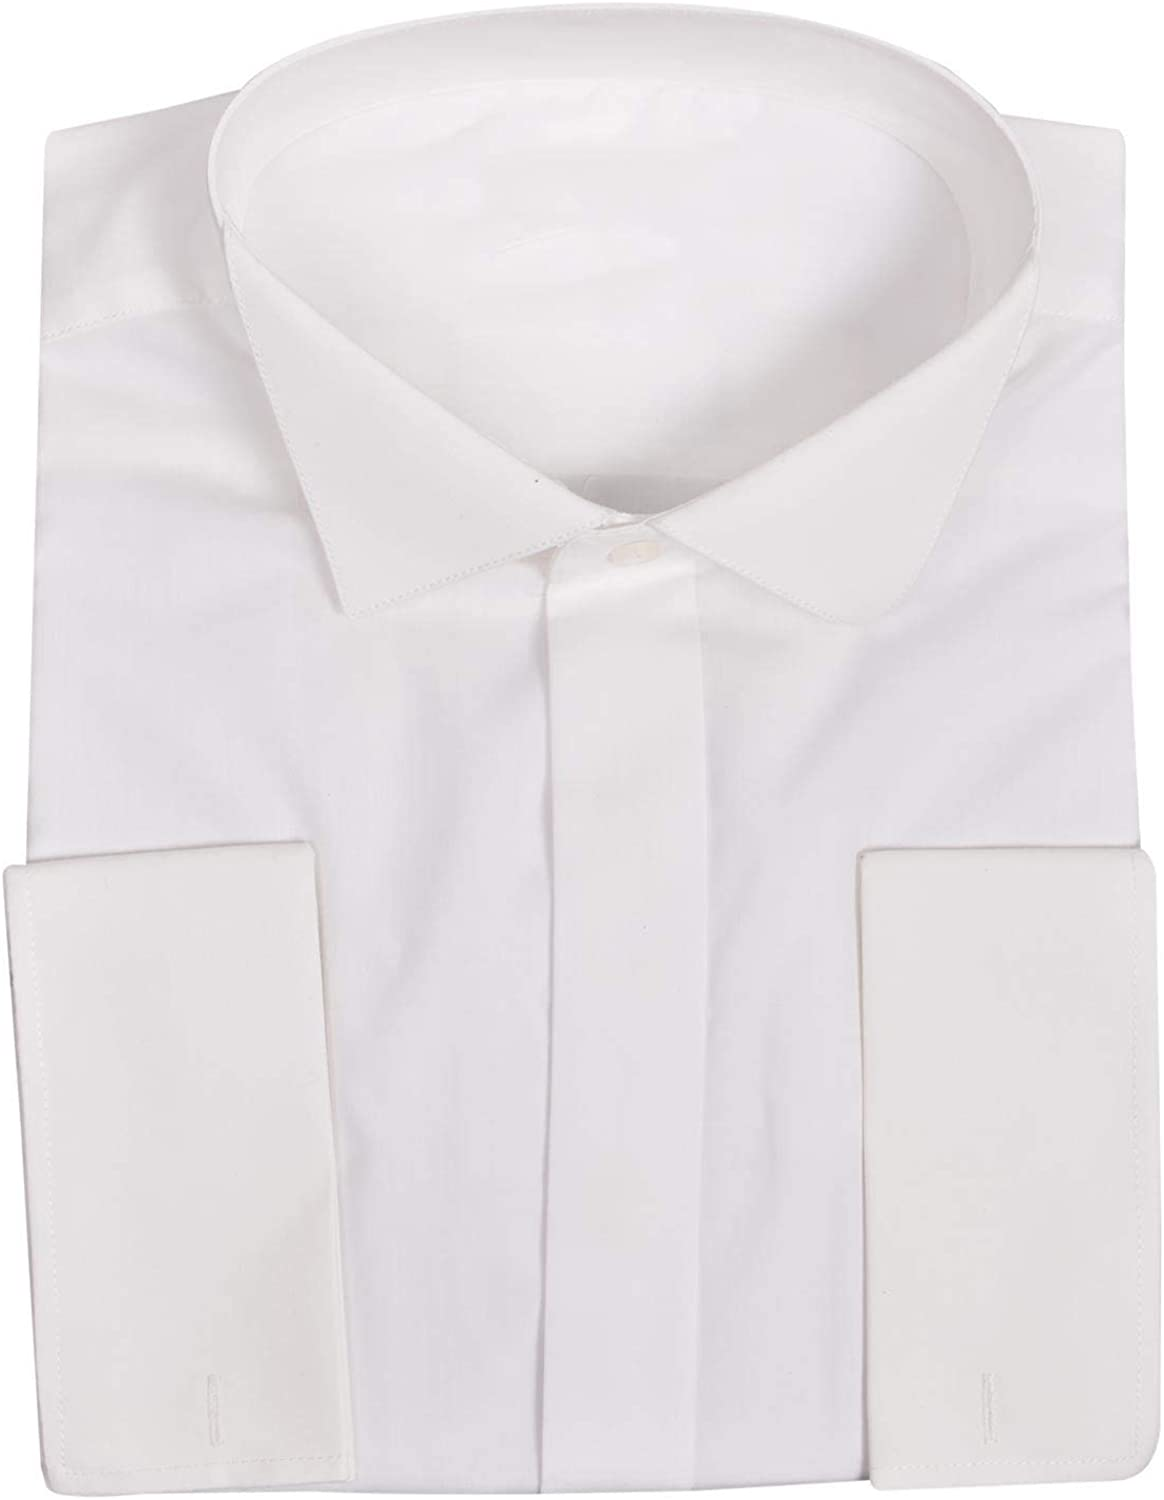 Ex-Branded Mens Wing Bwing Double Cuff Formal Dress Shirt